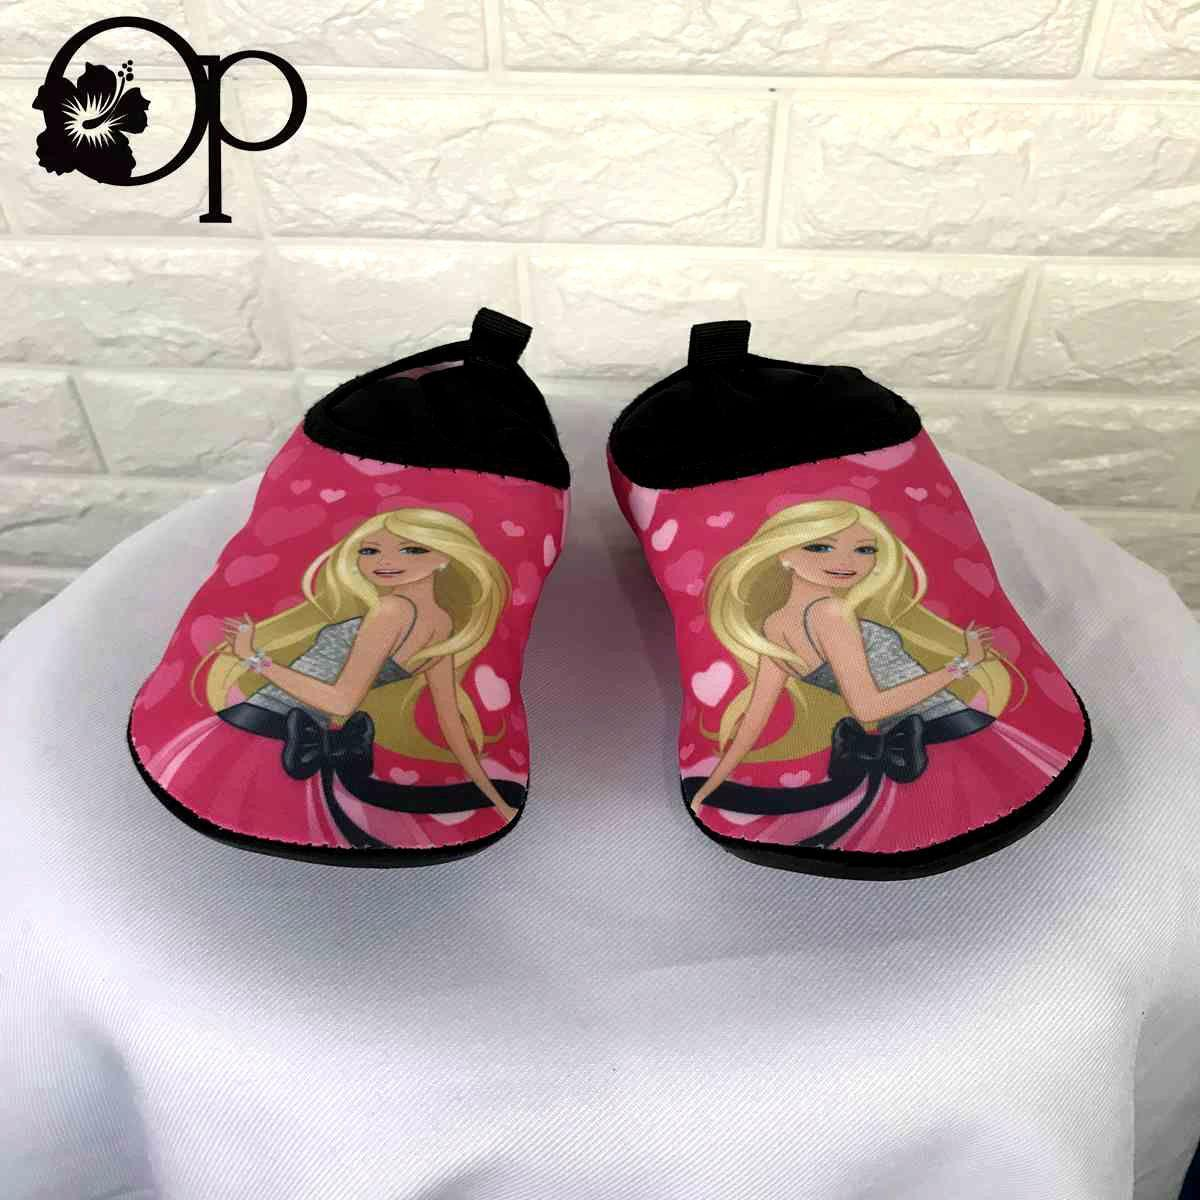 a37127c774f2 Water Shoes for Girls for sale - Girls Water Shoes online brands ...